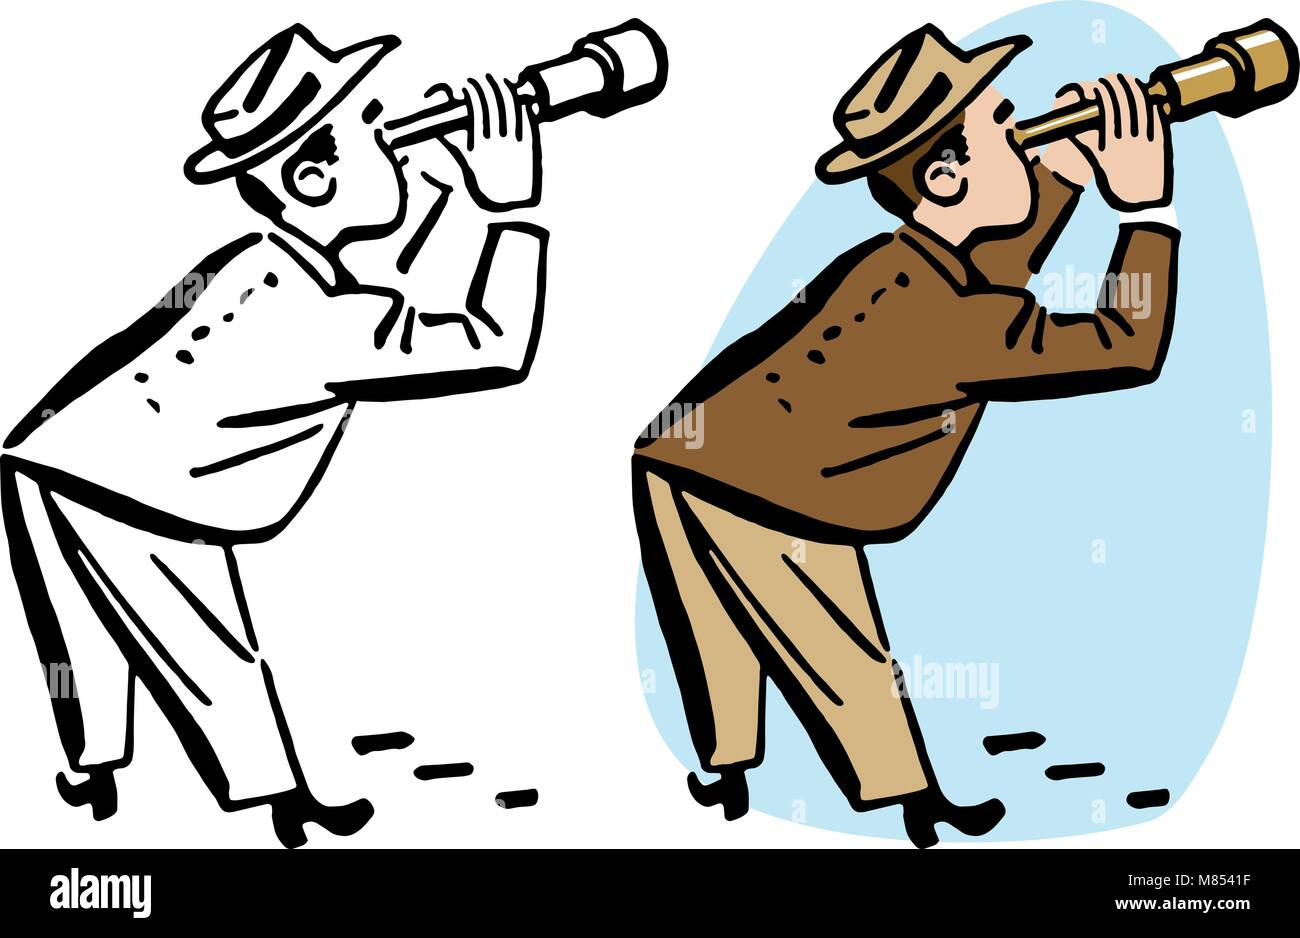 A man peers through a telescope spying on someone. - Stock Vector